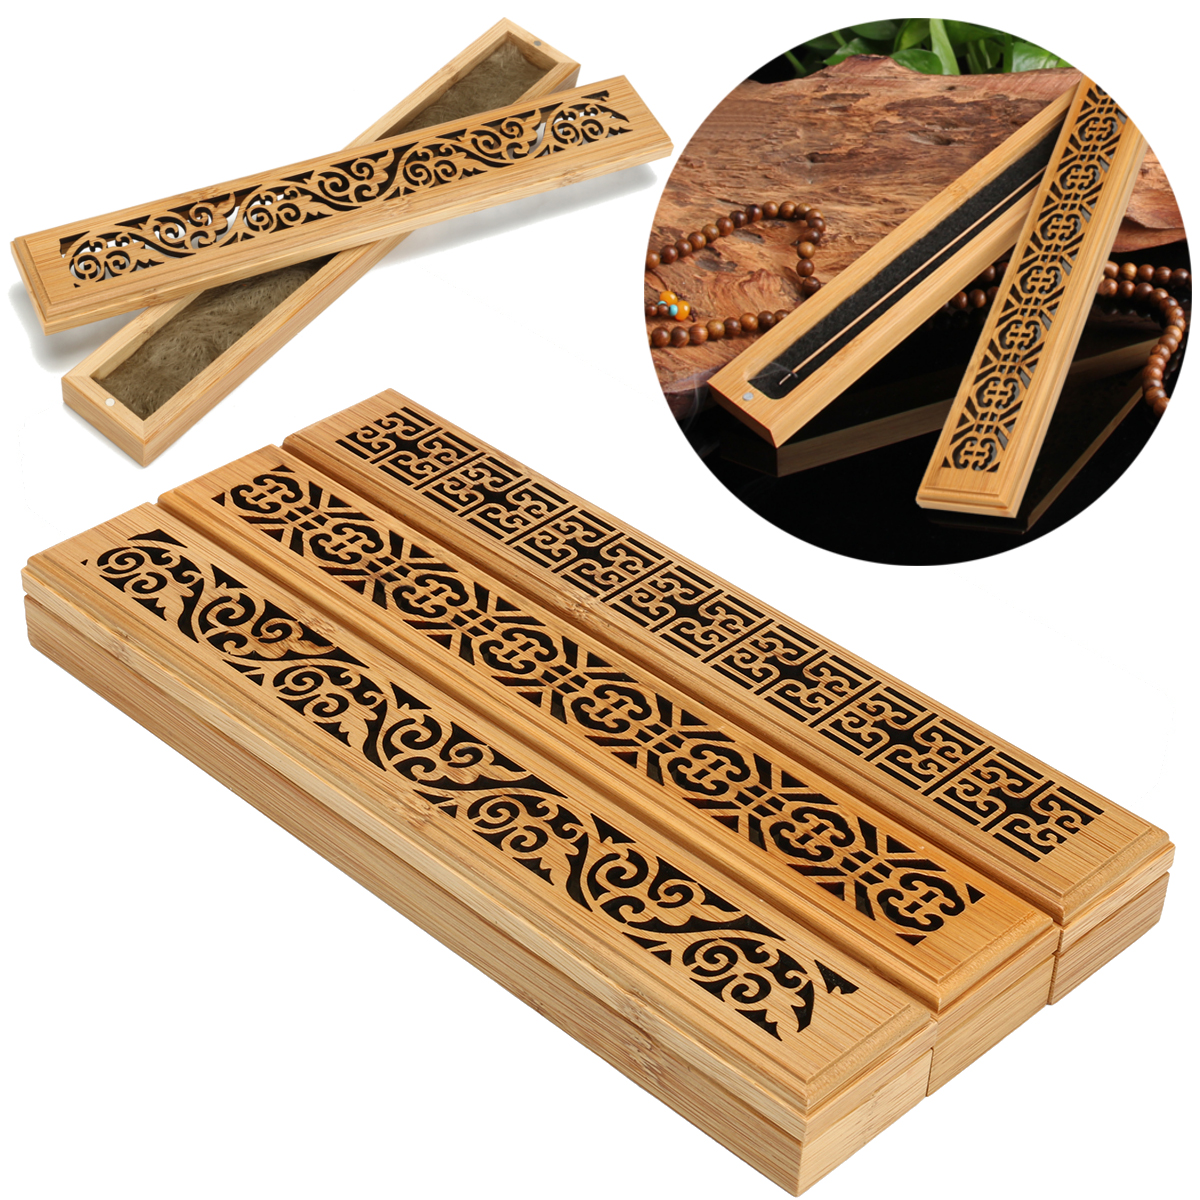 Bamboo Incense Burner Box Drawer Magnet Incense Lore Ho